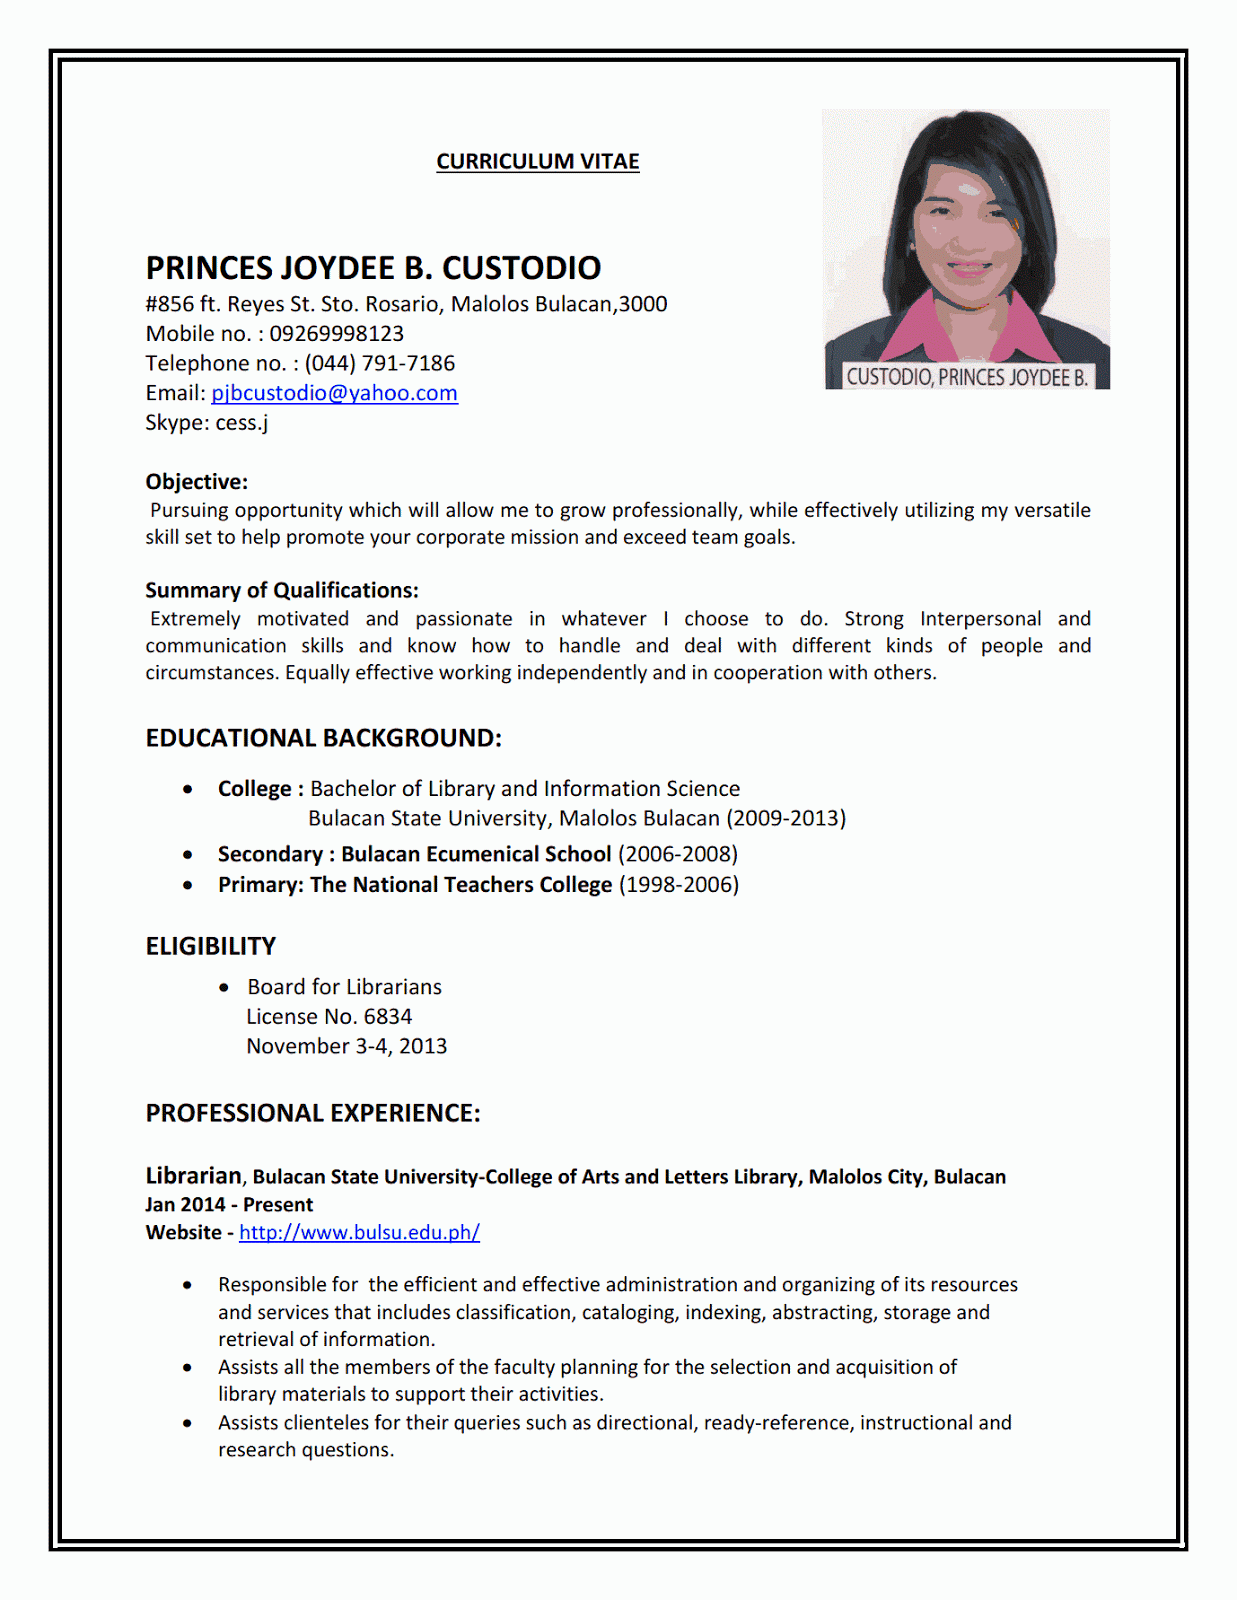 Resume Sample First Job | Sample Resumes Regarding Job Resume Examples For College Students